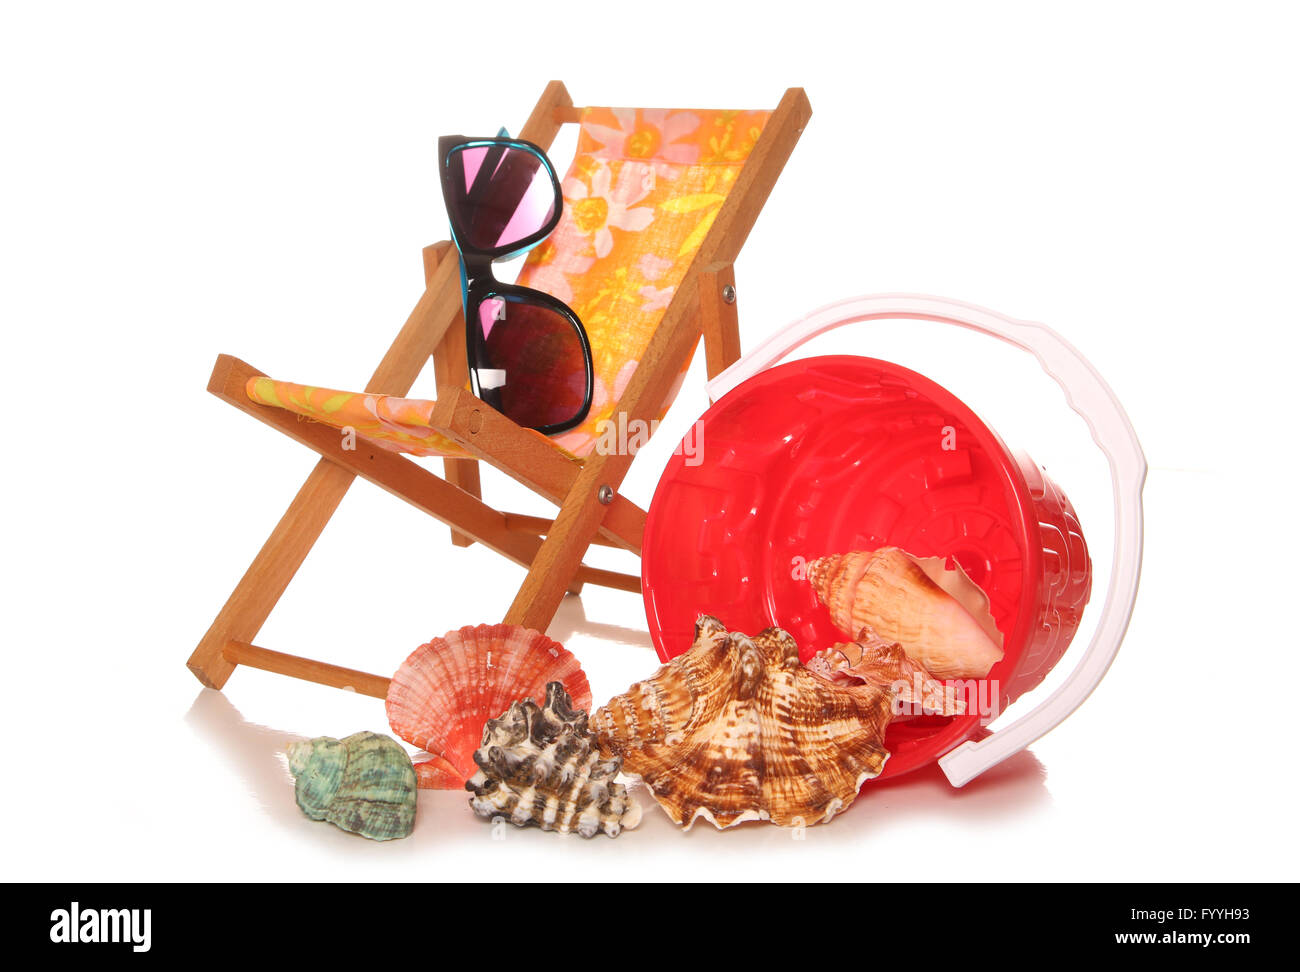 getting ready for summer holidays cutout - Stock Image